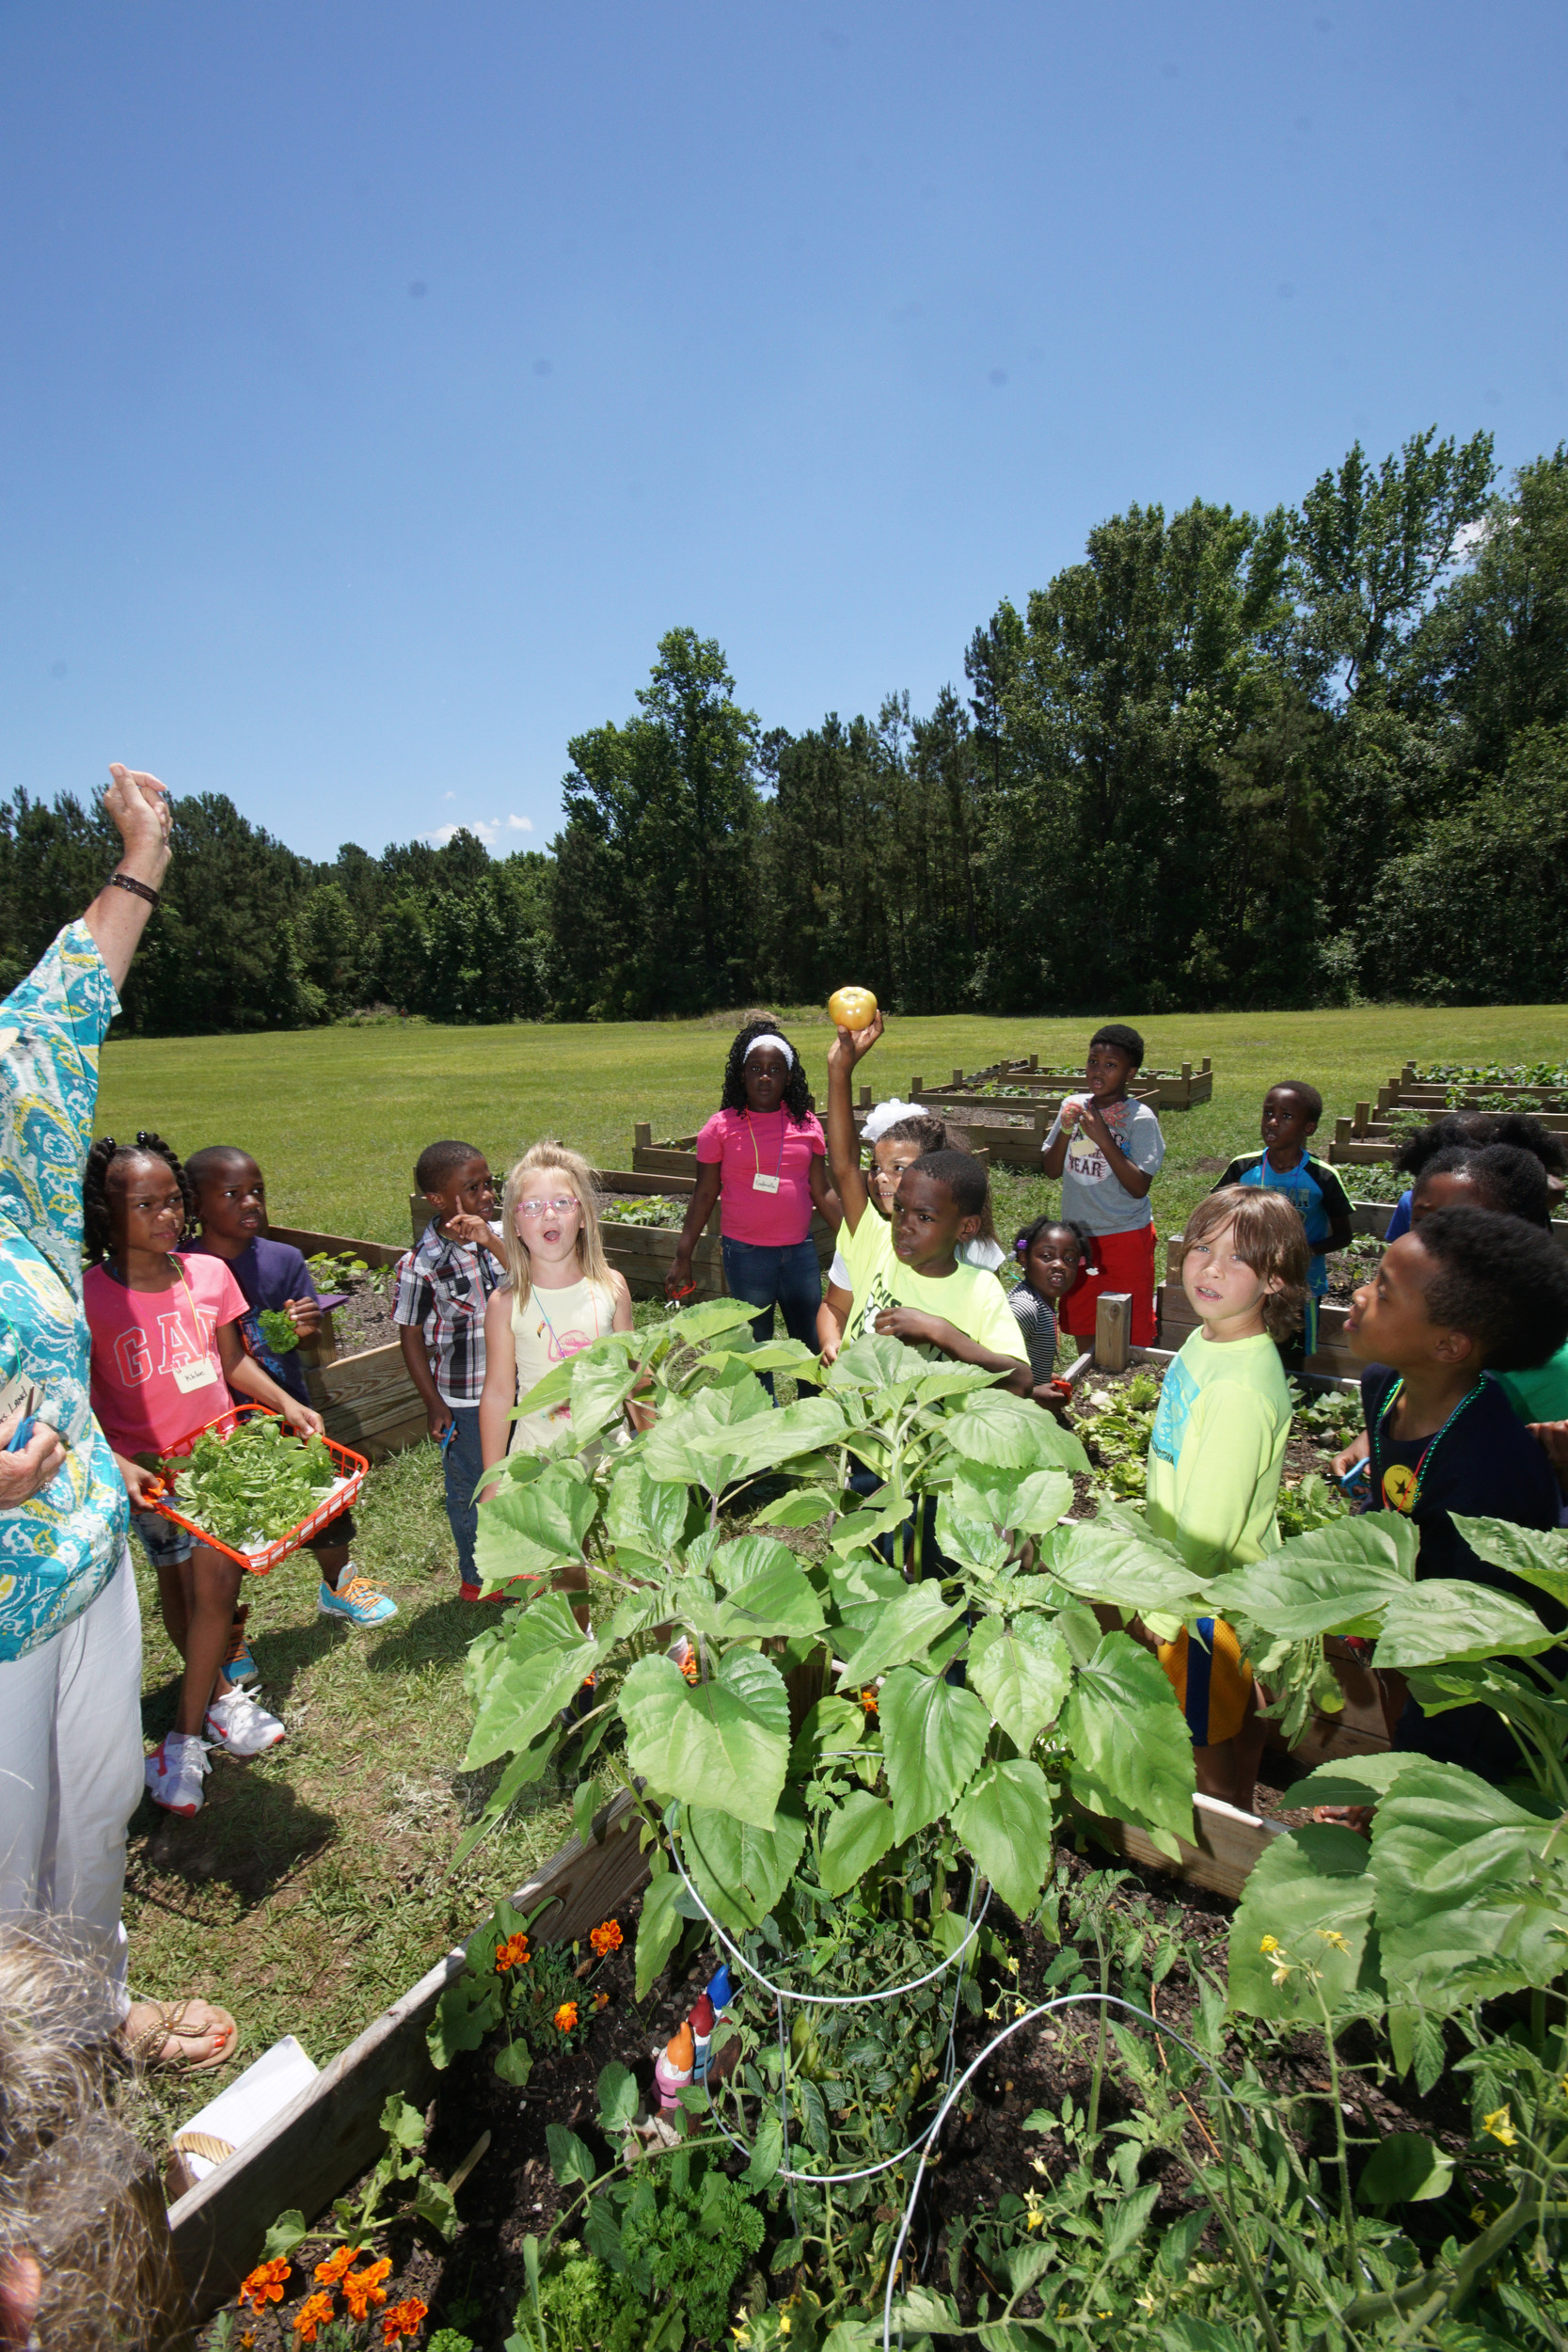 A tomato harvested by first graders at Manning Early Childhood Center is raised in triumph by a young gardener.